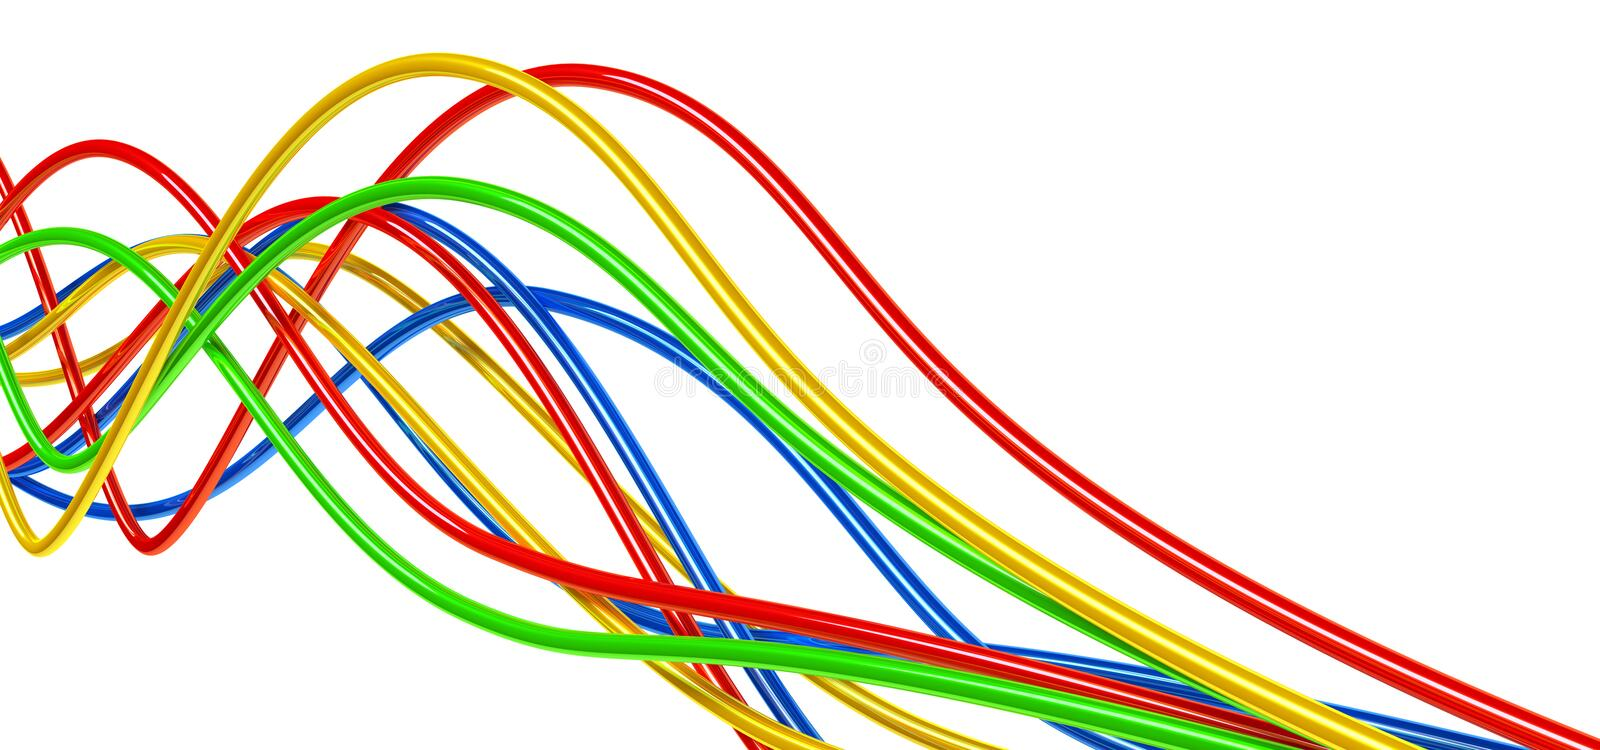 Varicolored cables royalty free illustration